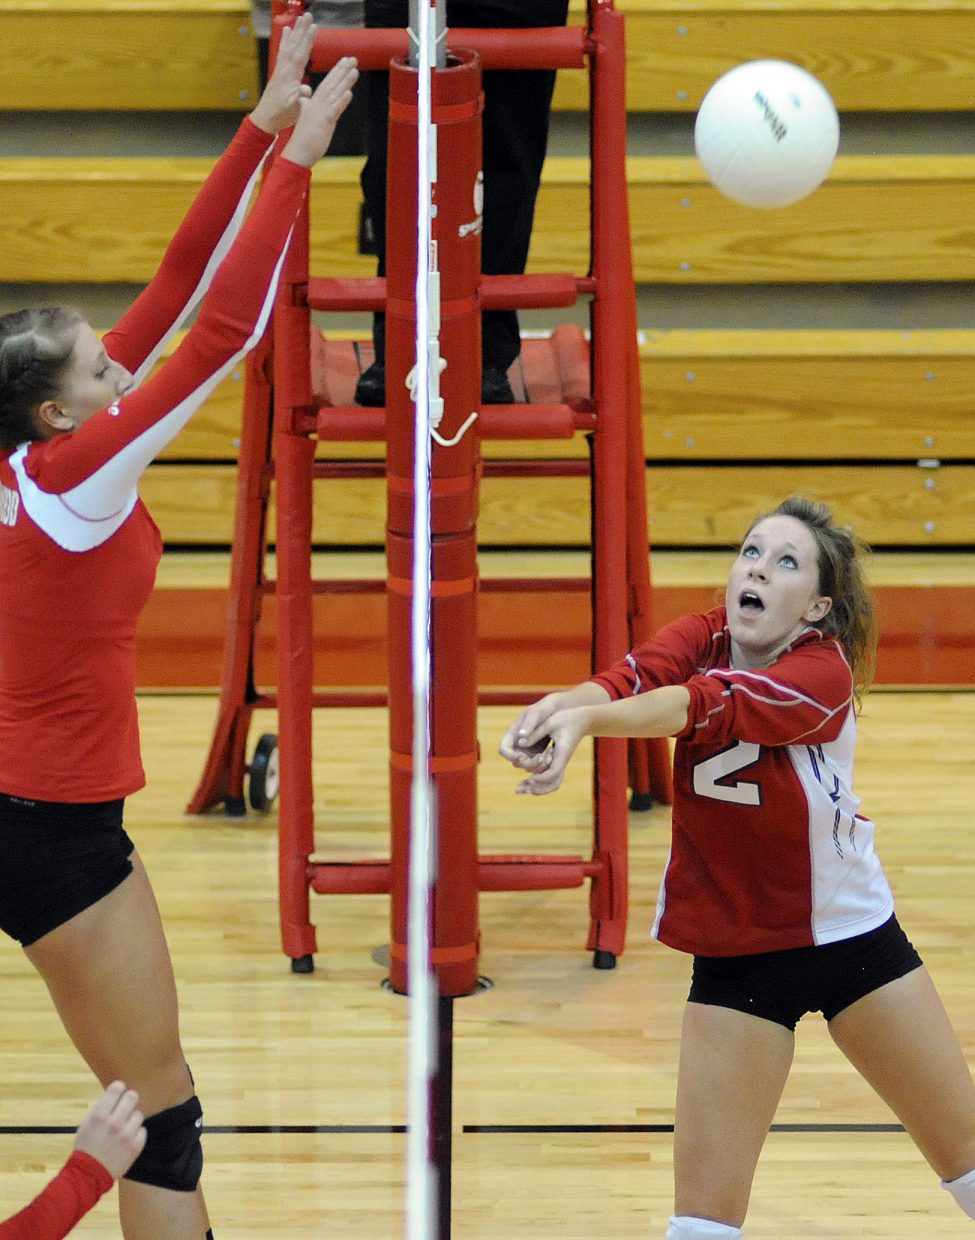 Steamboat's Callie Hvambsal catches a ball near the net Thursday against Glenwood Springs.